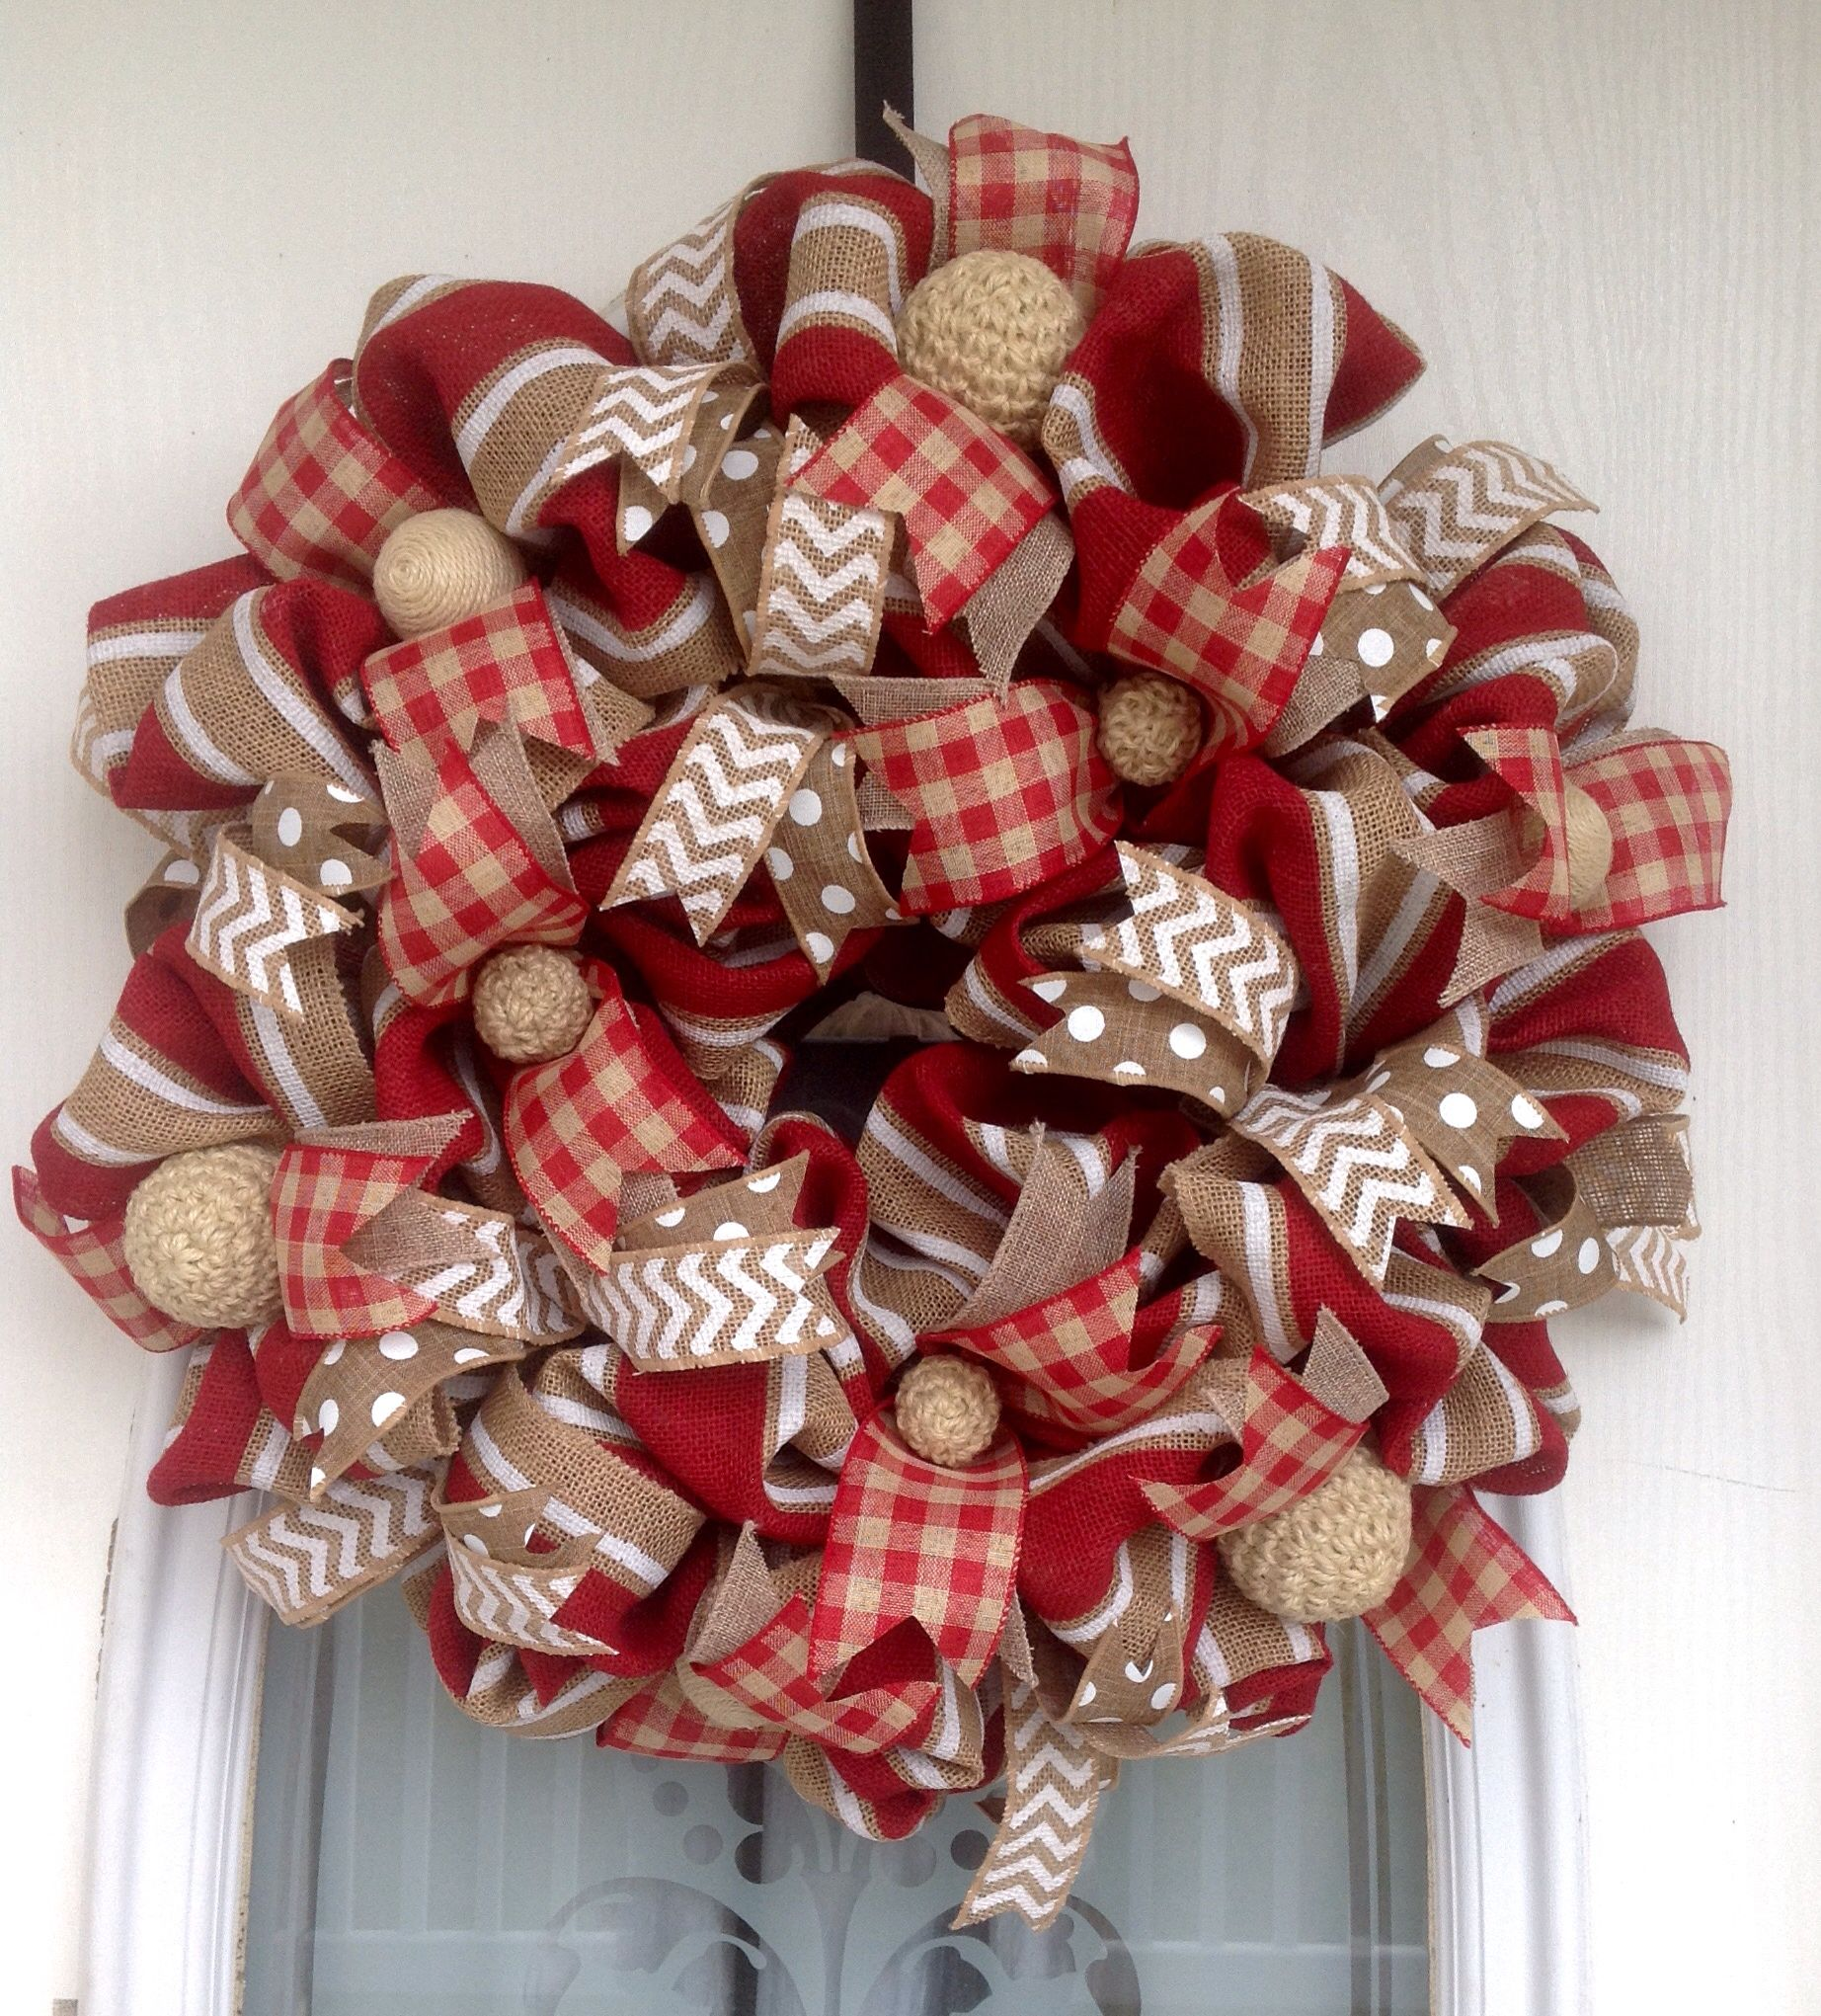 22 RedTanWhite Burlap Wreath with Yarn Balls